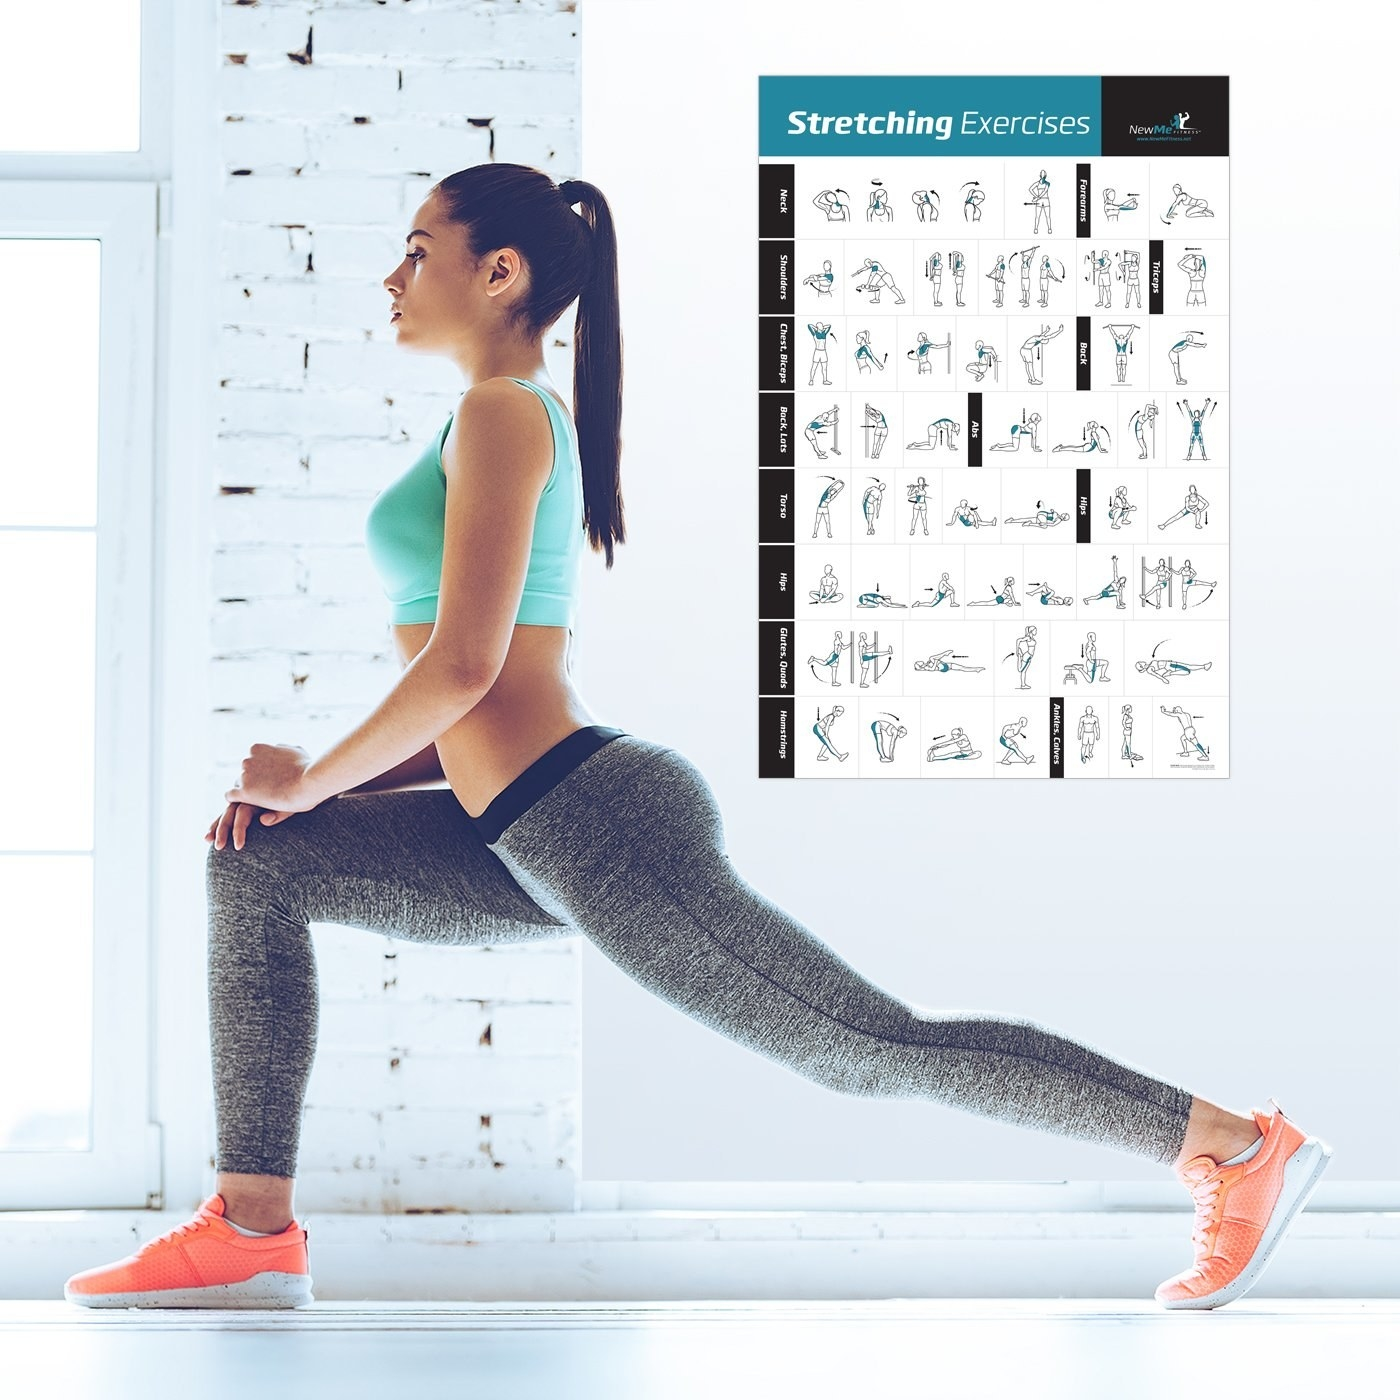 A model stretching their legs with a graphic of the exercises in front of them. The poster has eight categories with several stretches displayed in each.